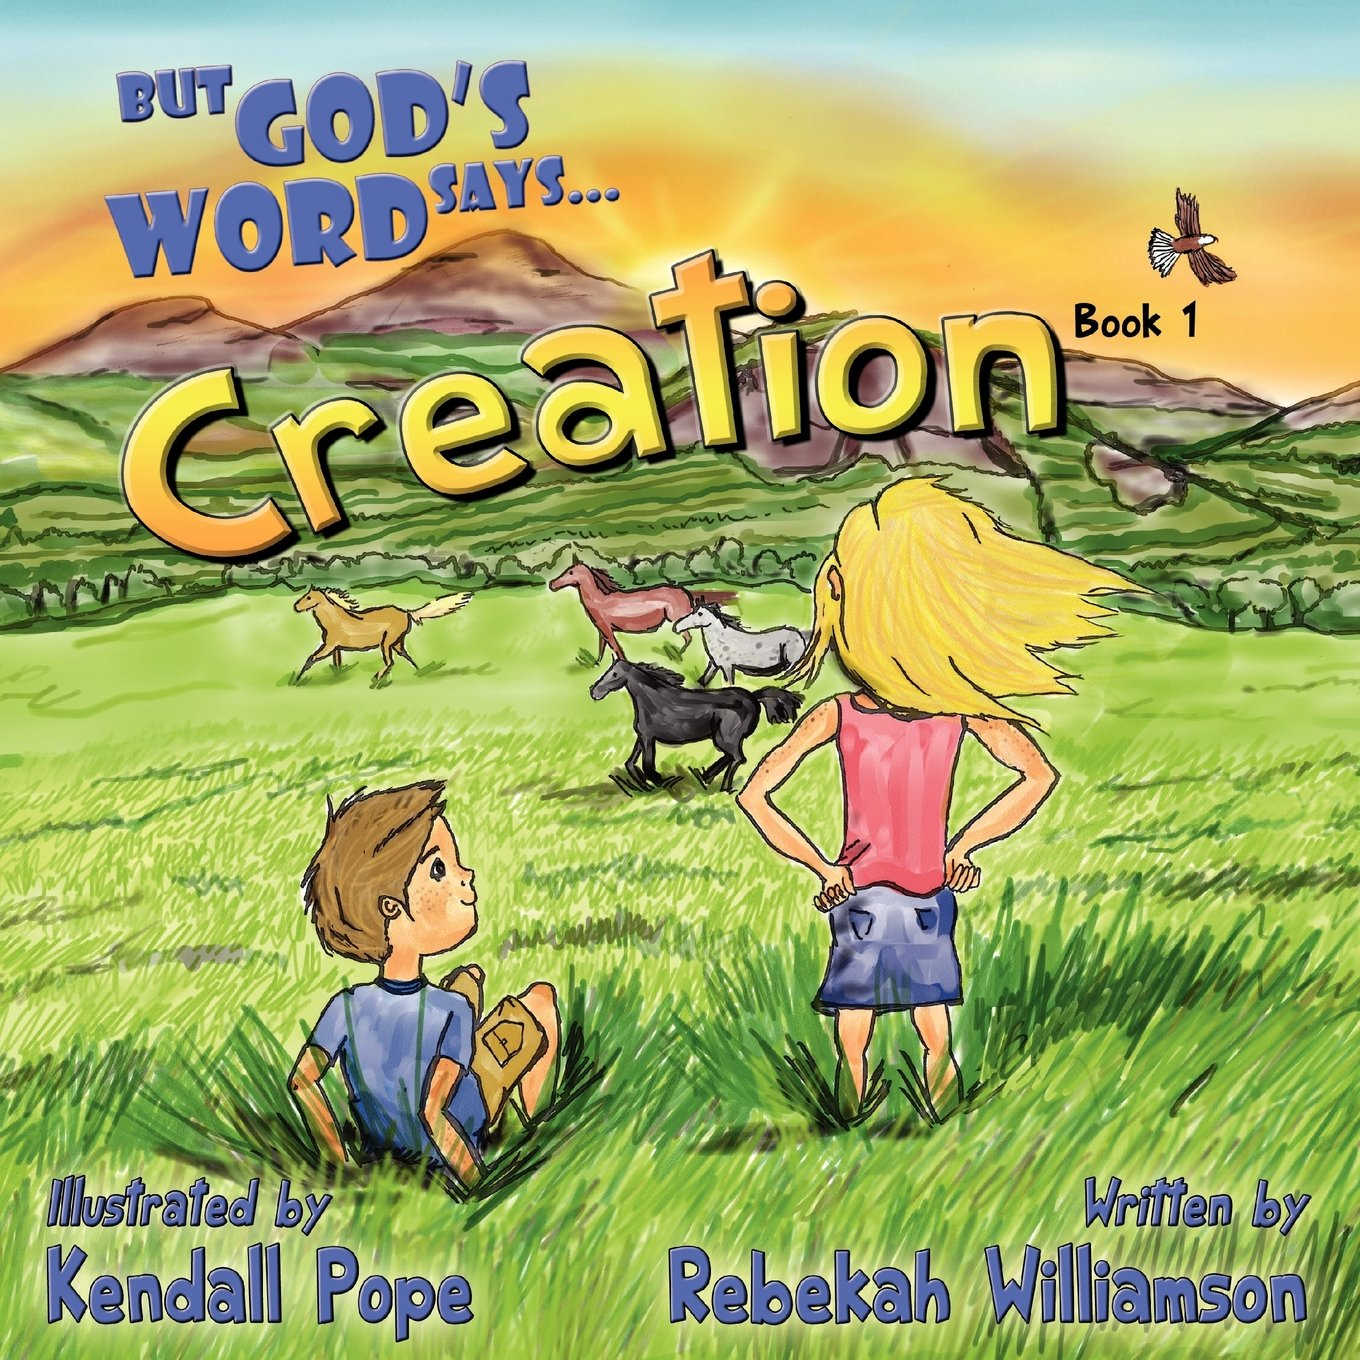 But God's Word Says...Creation (Book 1) PDF